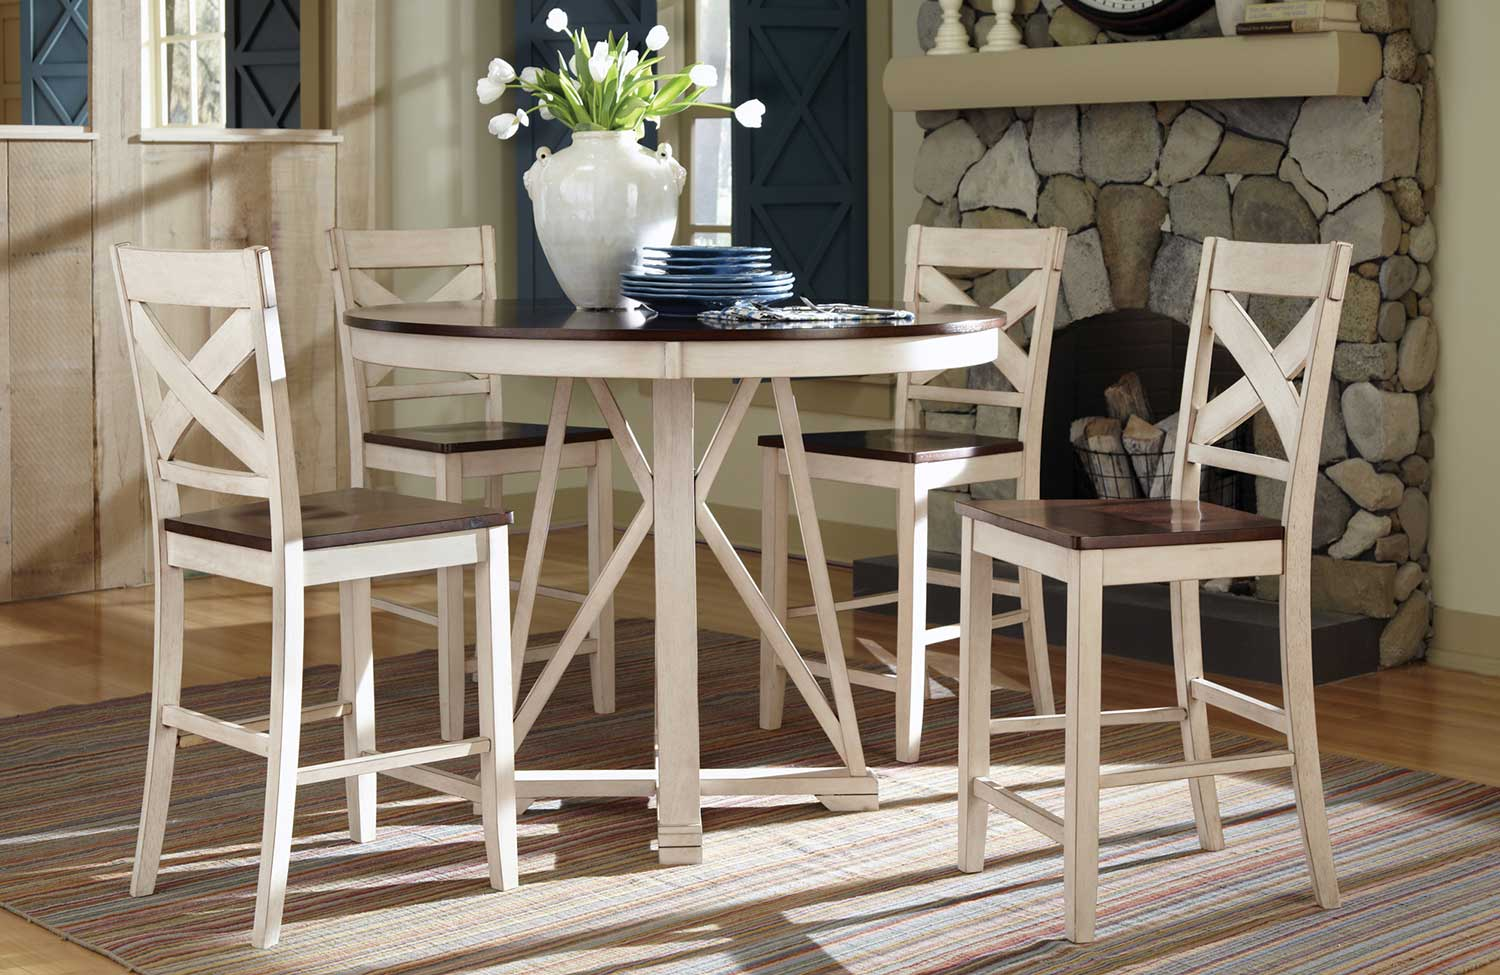 Coaster Ellinger Counter Height Dining Set - Antique Oak/White